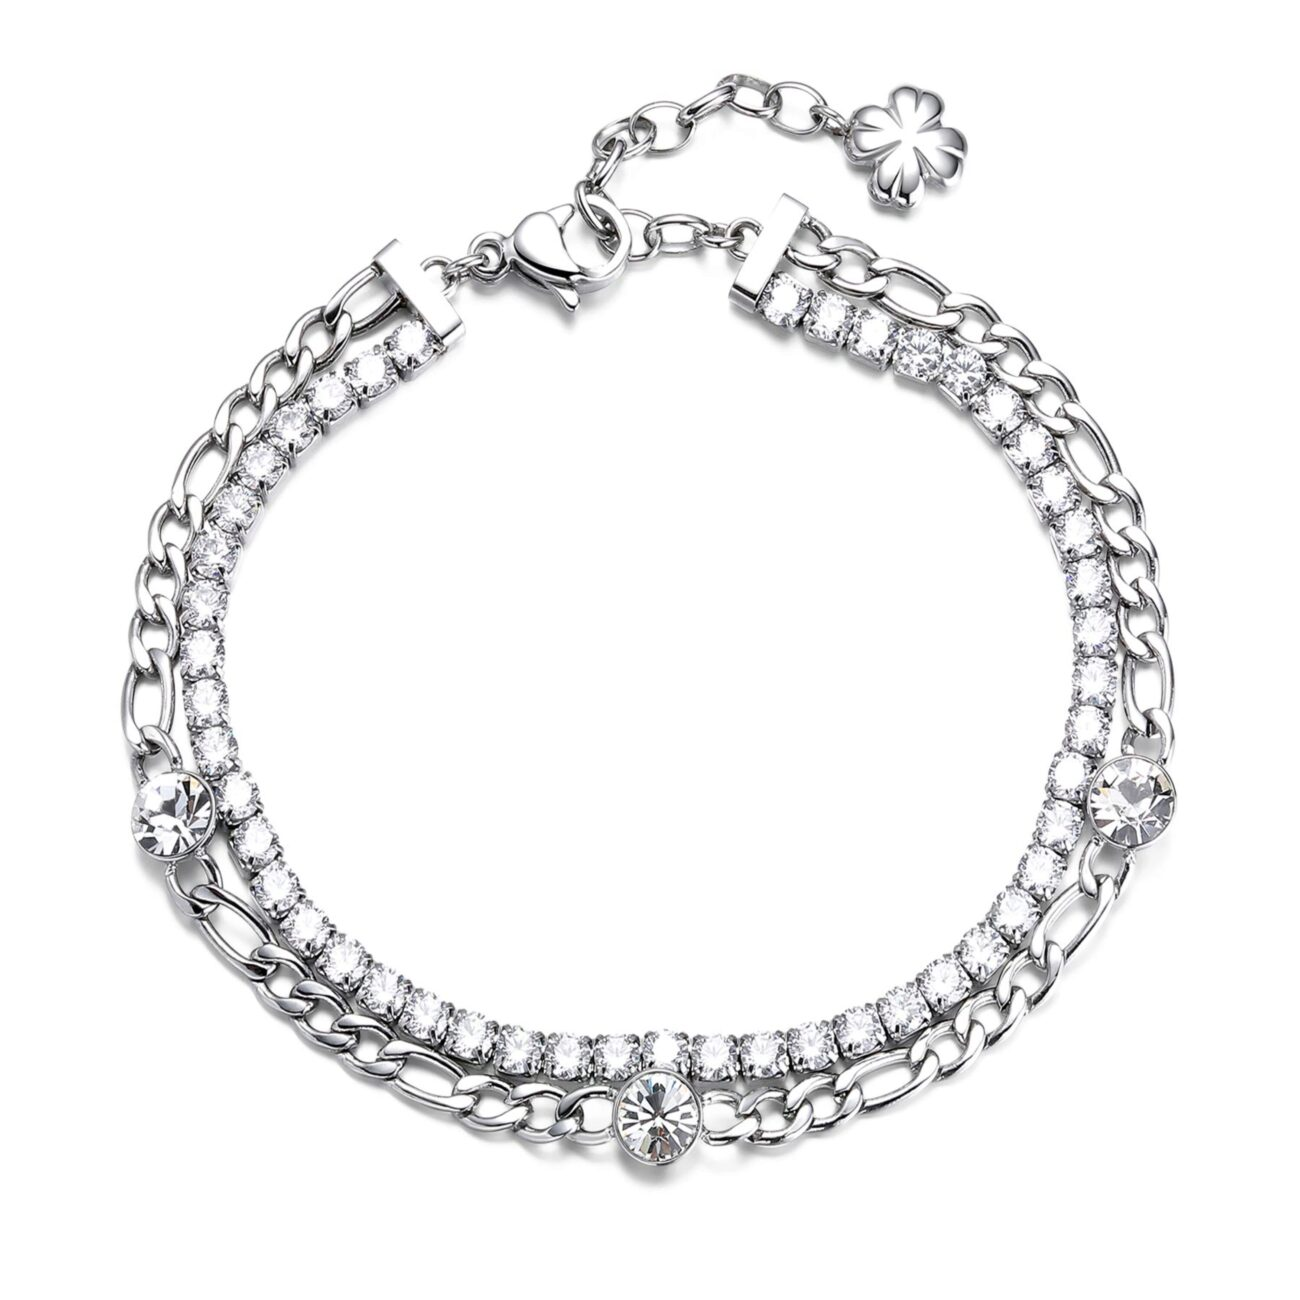 304 stainless steel double tennis bracelet with white cubic zirconia and crystals.